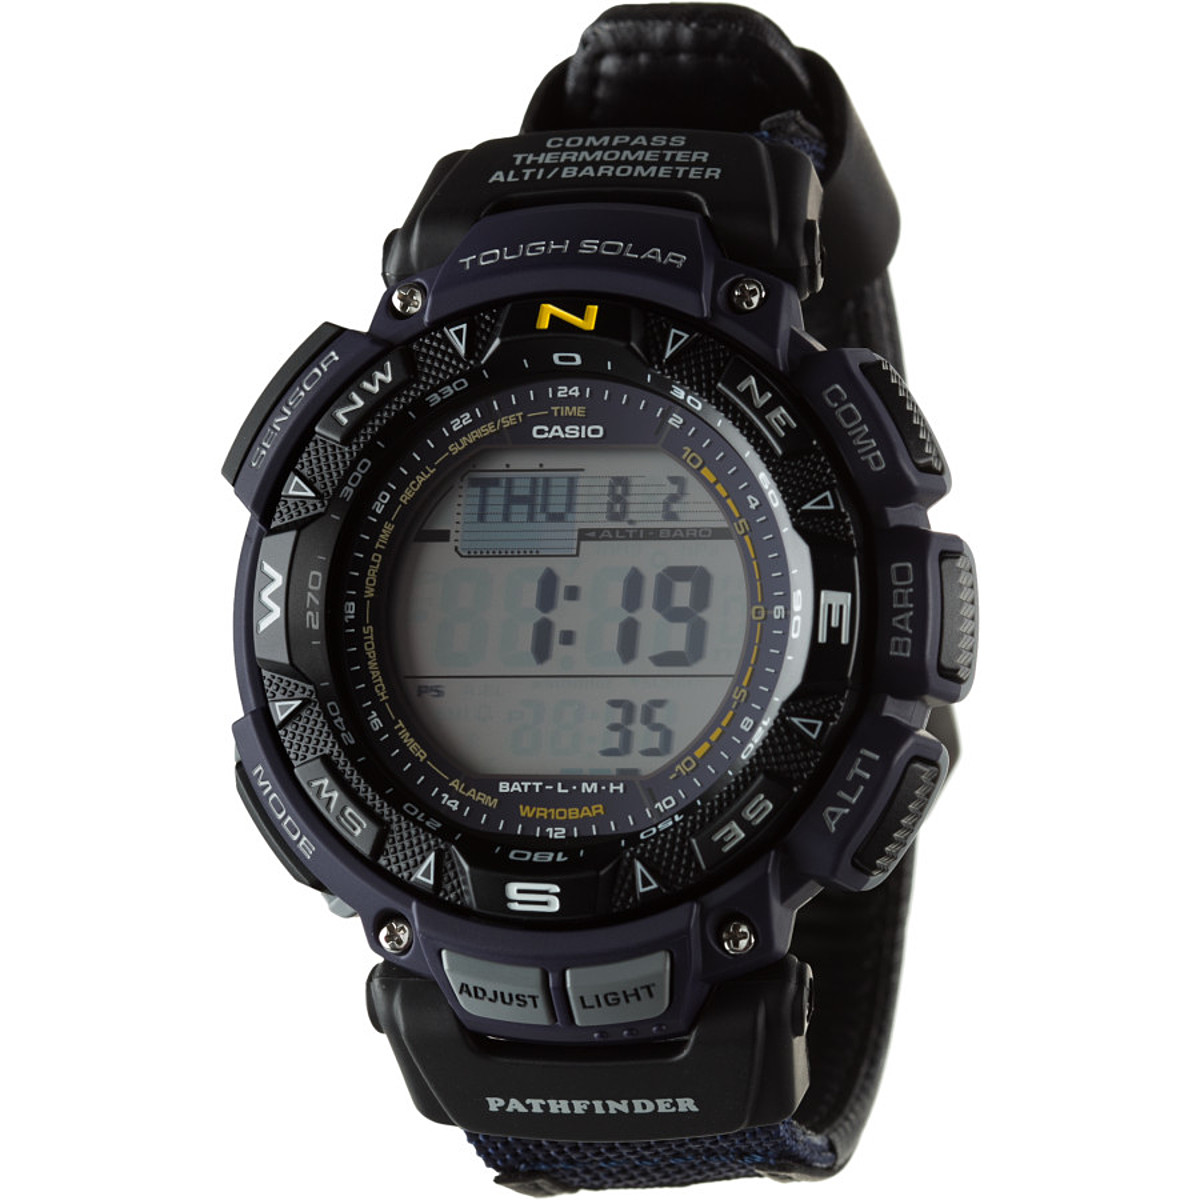 casio pathfinder pag80 1v reviews trailspace com rh trailspace com Casio Pathfinder Instruction Manual Casio Sport Pathfinder PAW-1100 Manual